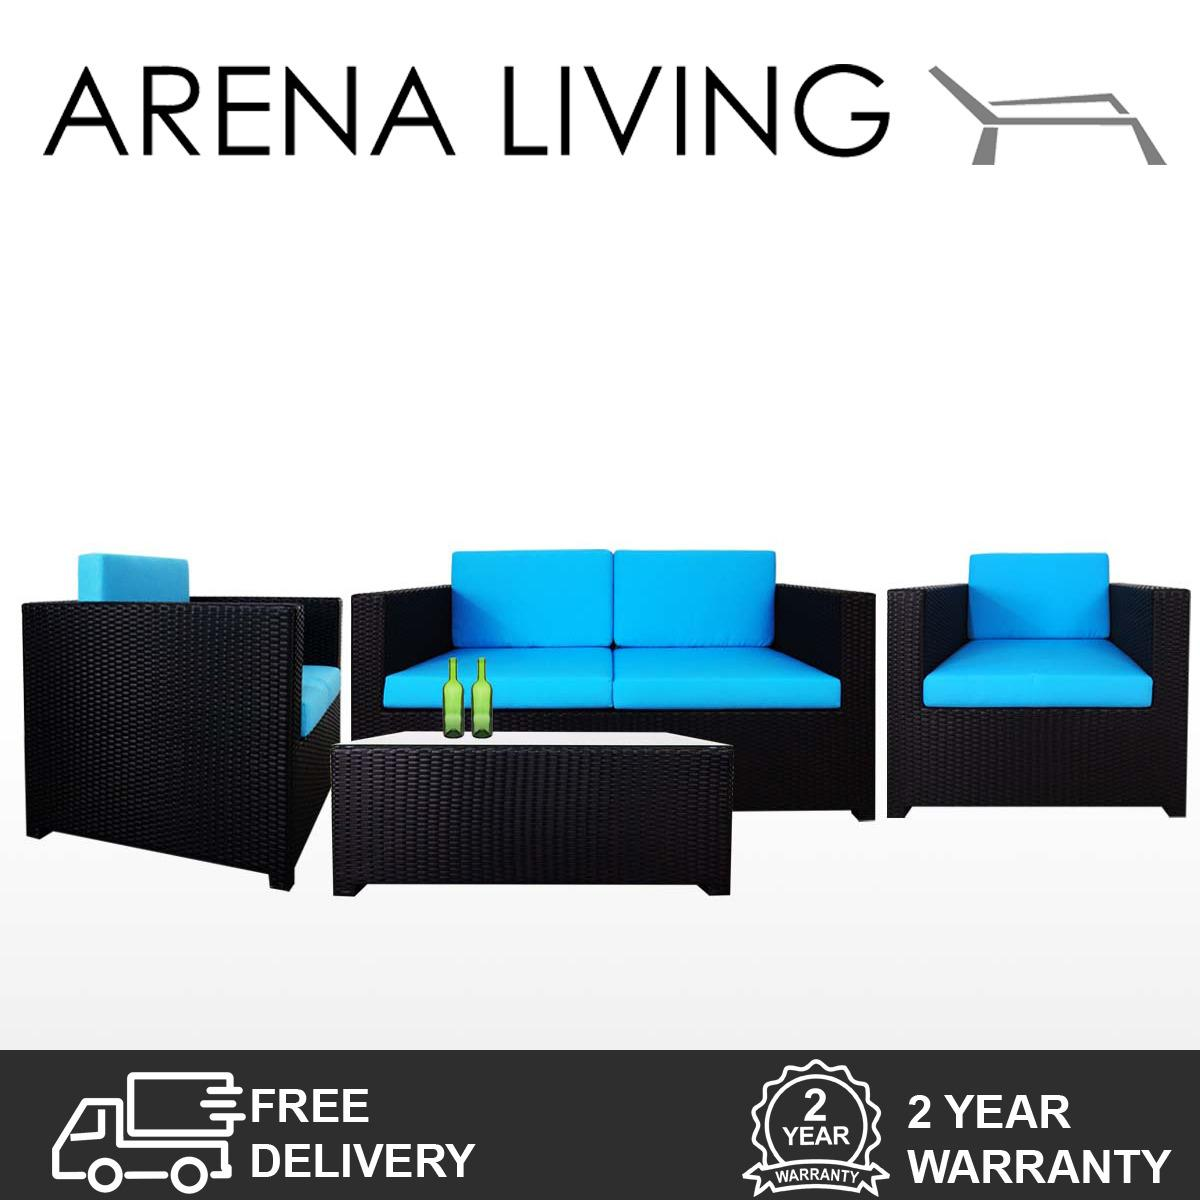 Review Fiesta Sofa Set Ii Blue Cushions Outdoor Furniture By Arena Living™ On Singapore